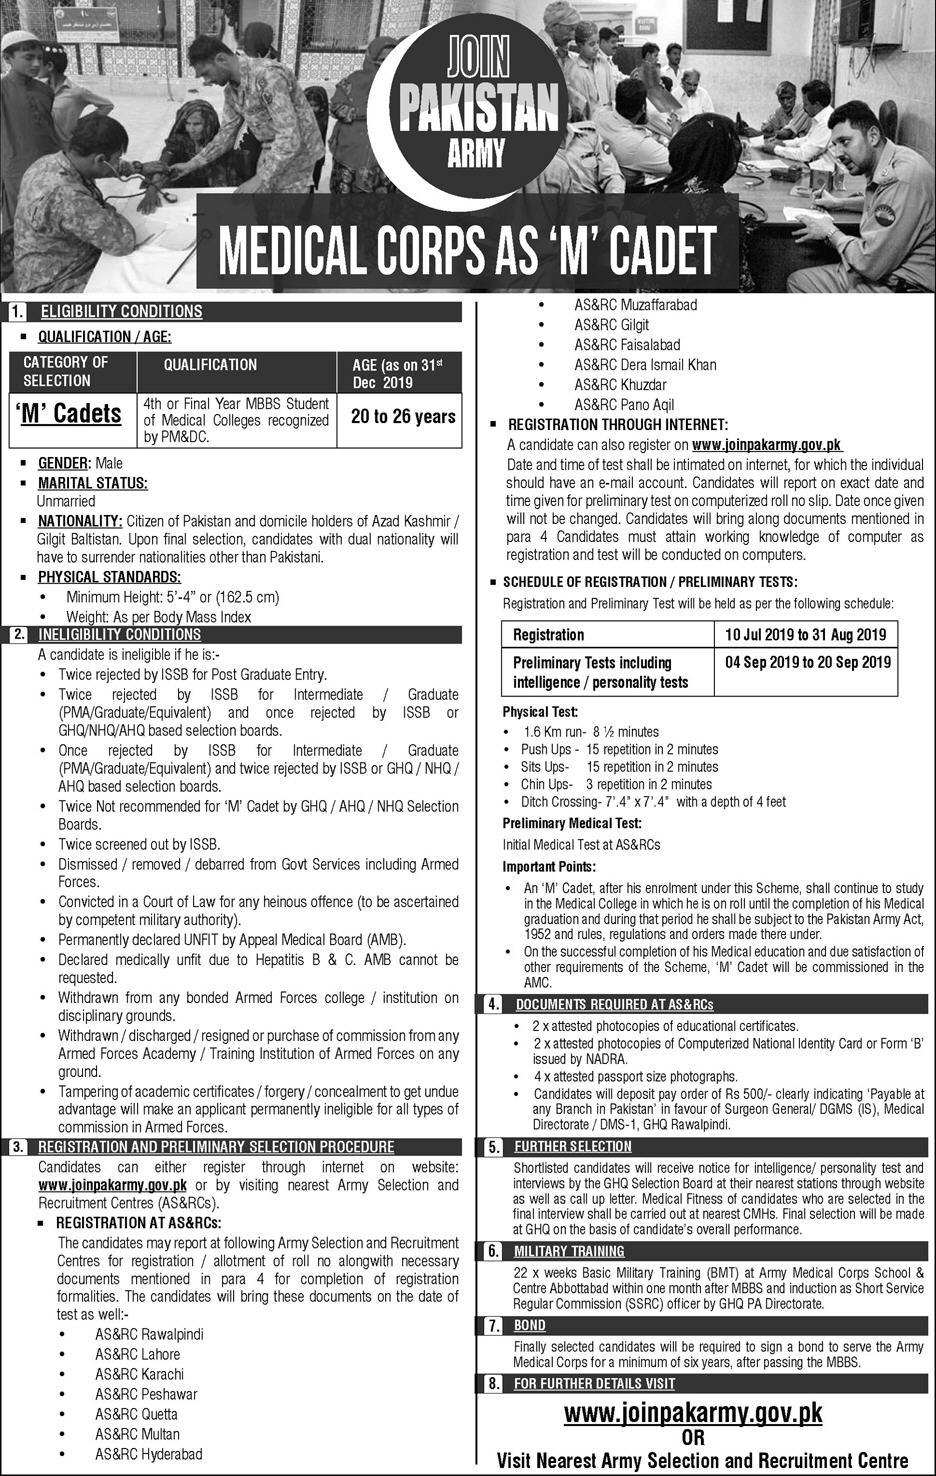 join Pakistan Army as medical cadet.